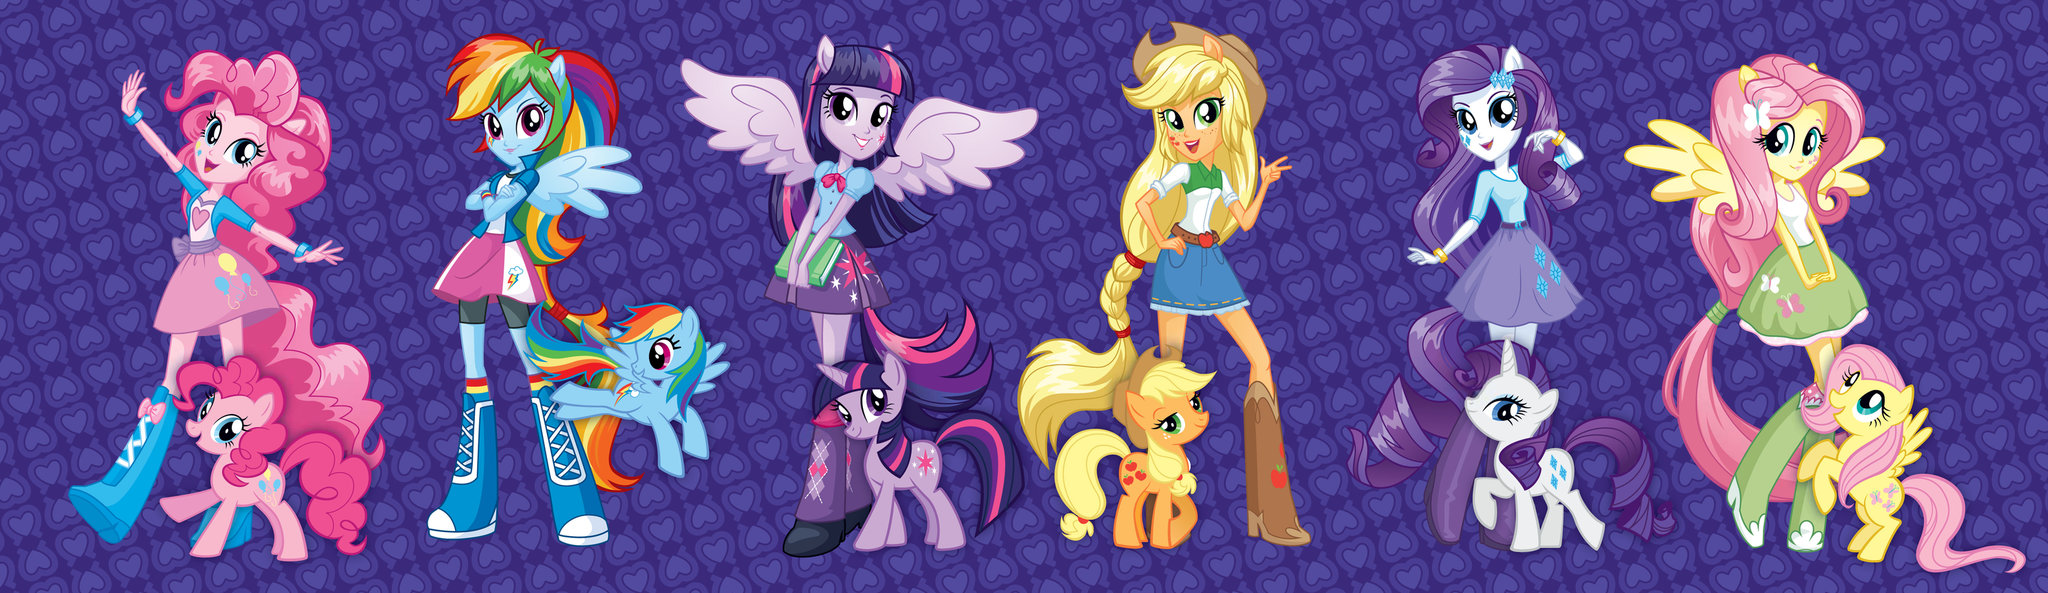 http://images.wikia.com/mlp/images/6/6a/Equestria_Girls_March_2_2013_character_designs.jpg